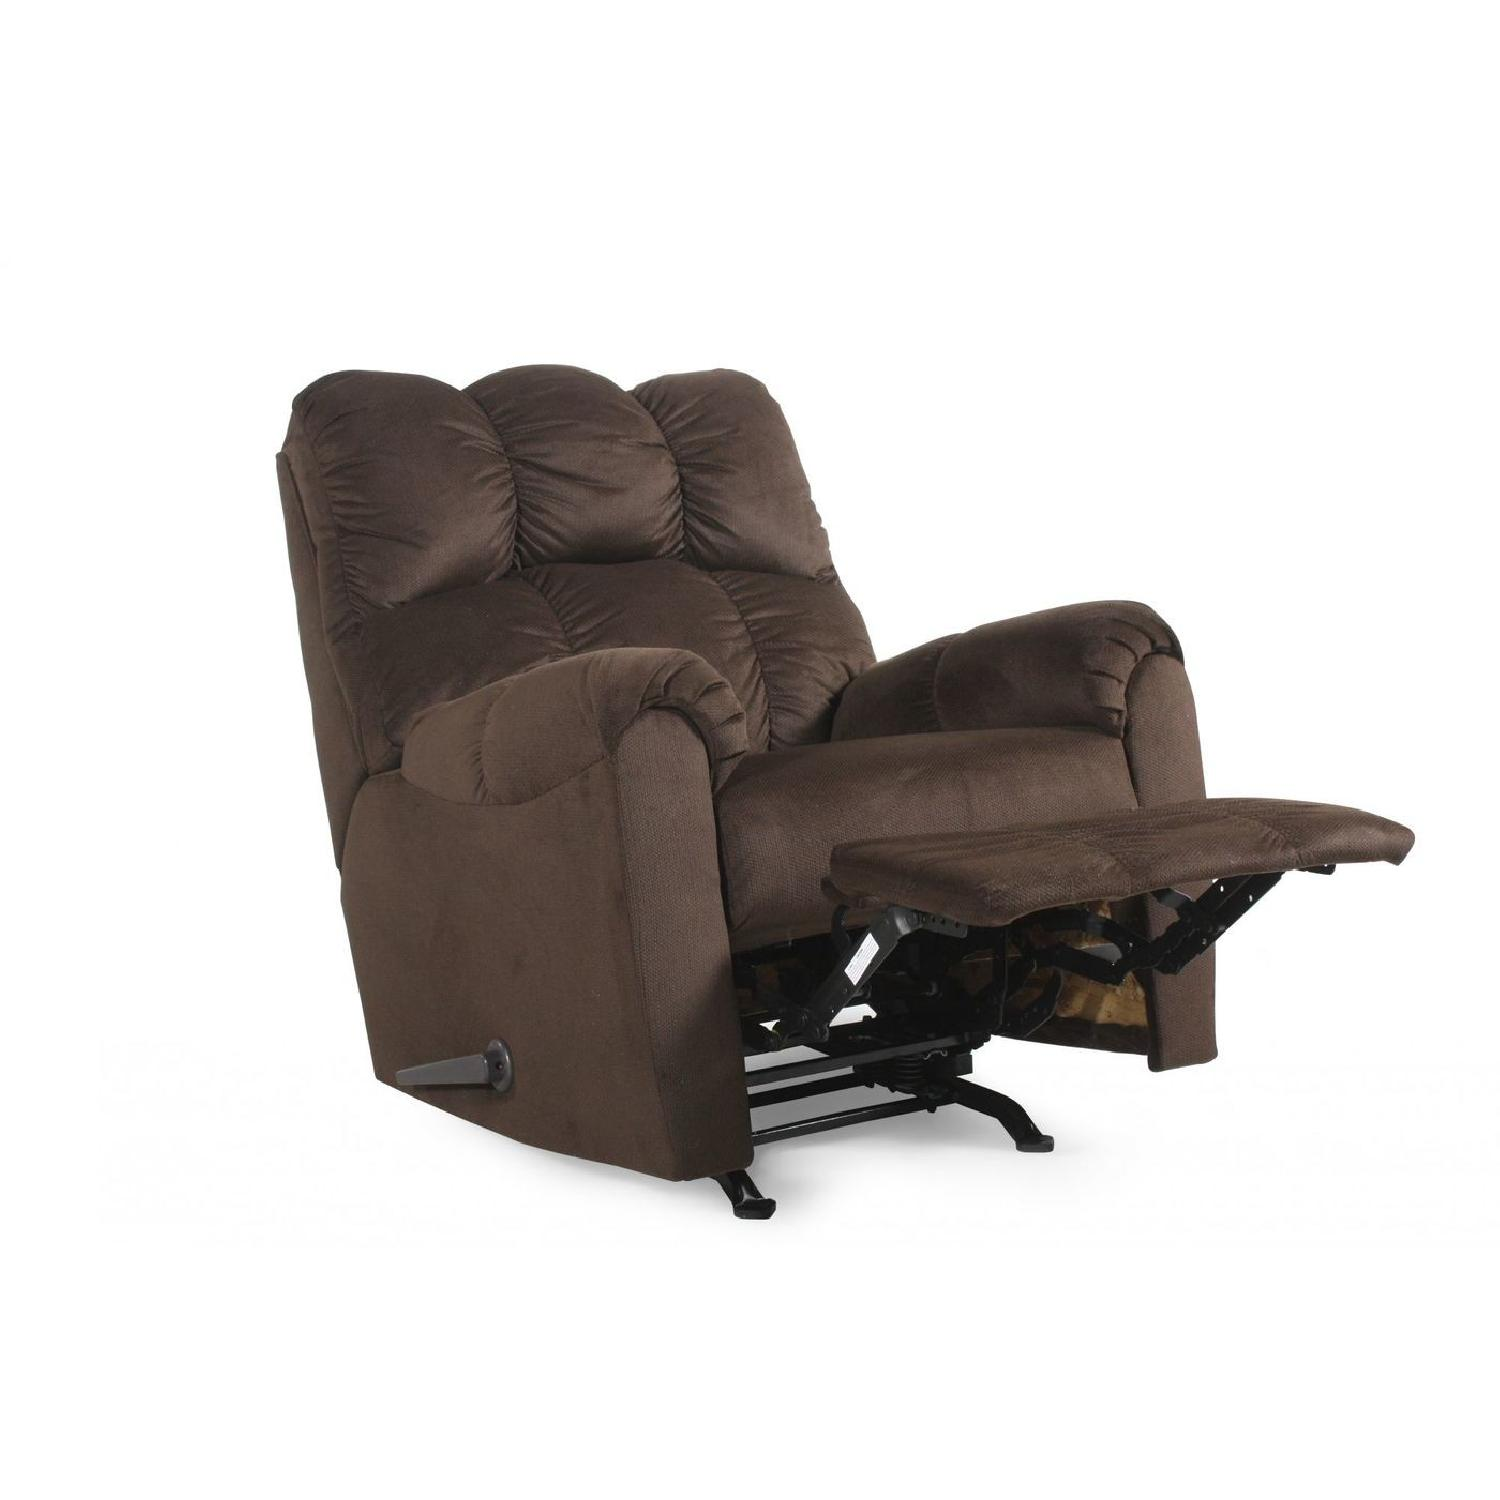 Ashley Brown Motion Recliner